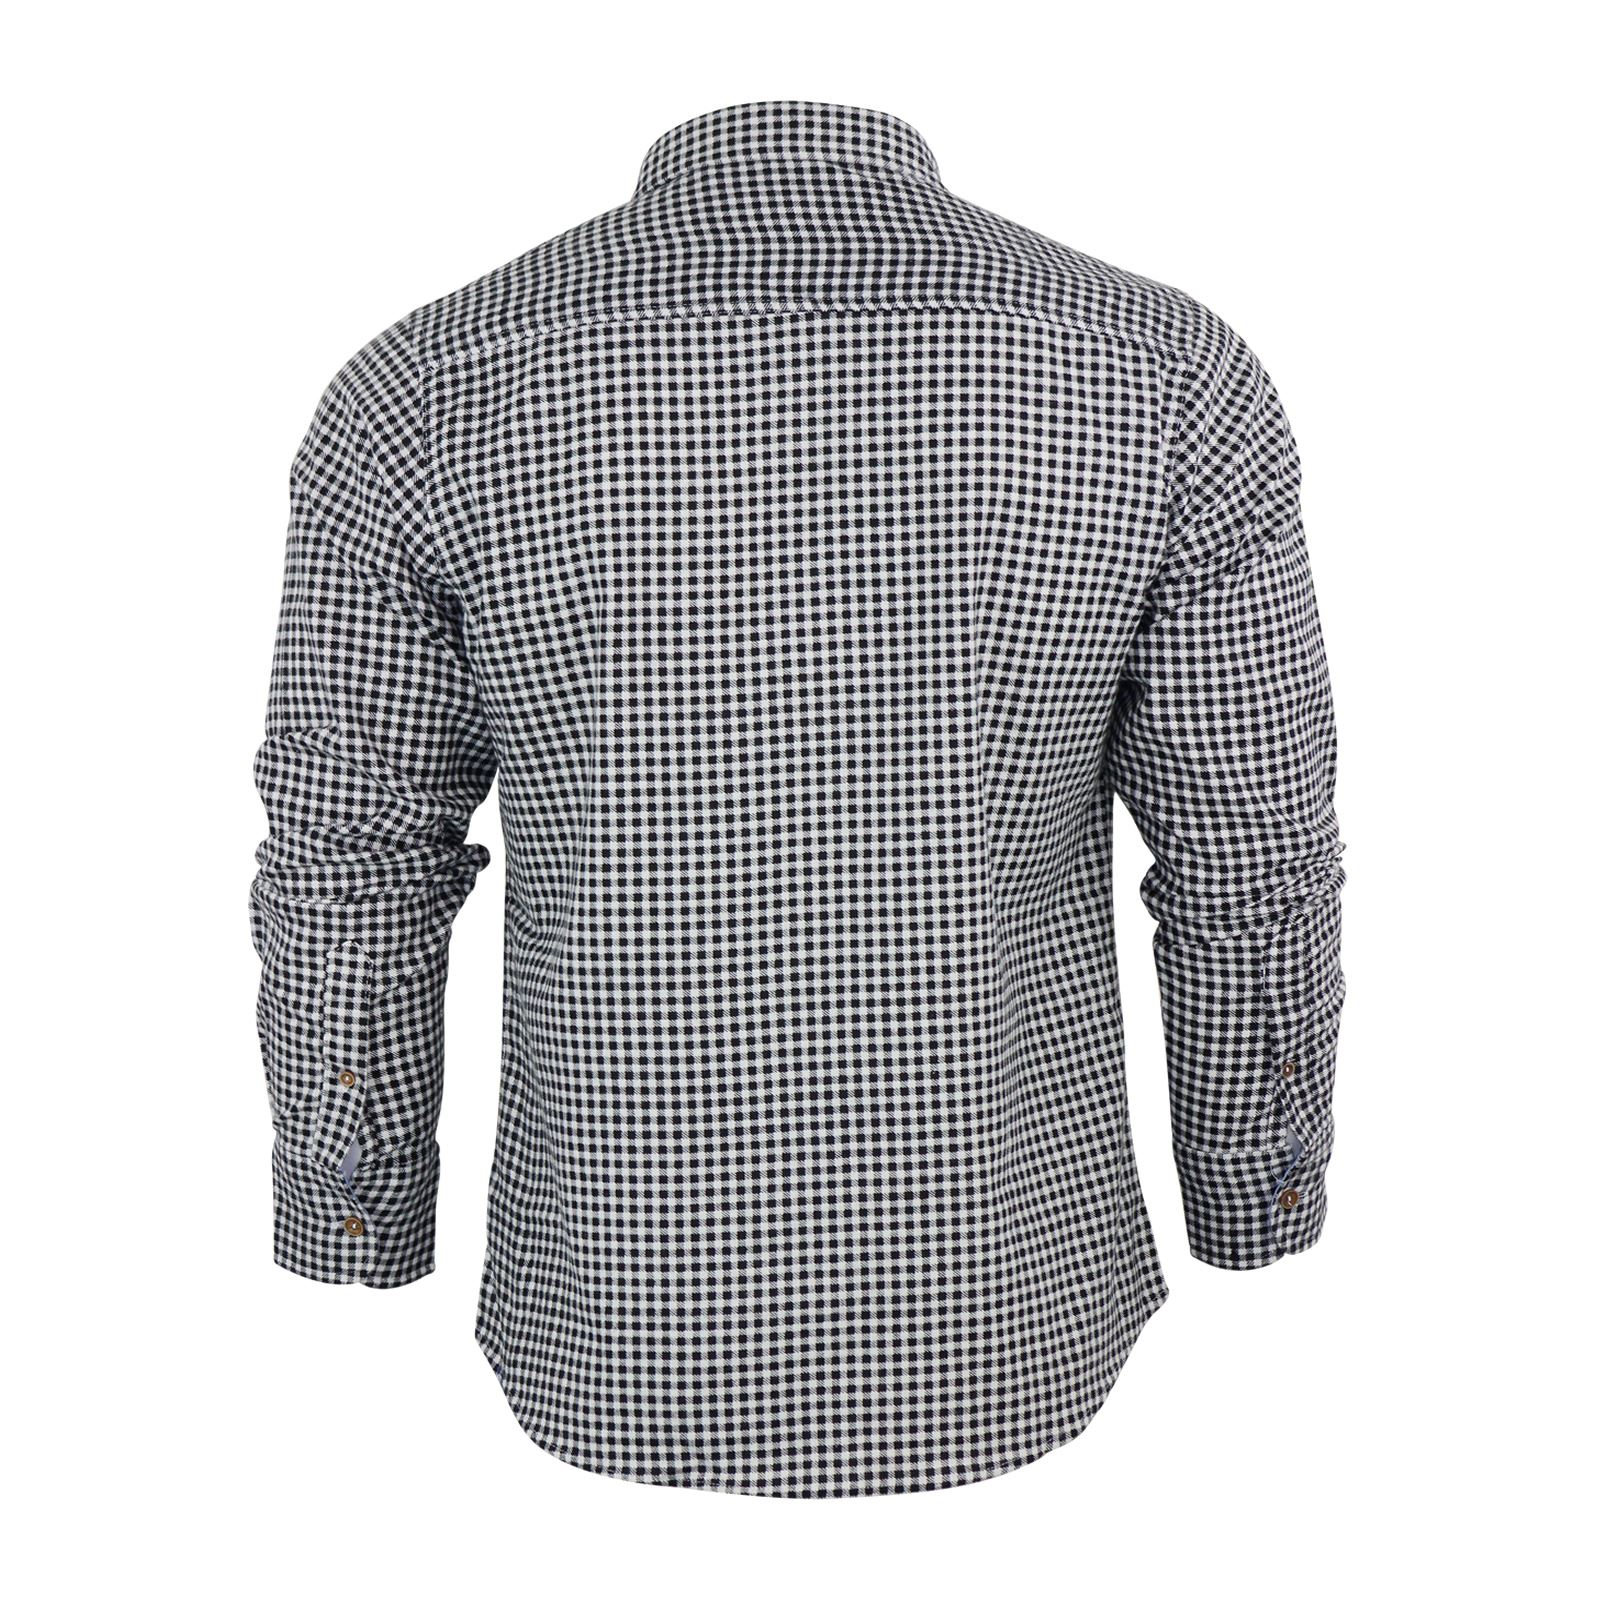 1332550d5 Mens Check Shirt Brave Soul Flannel Brushed Cotton Long Sleeve ...